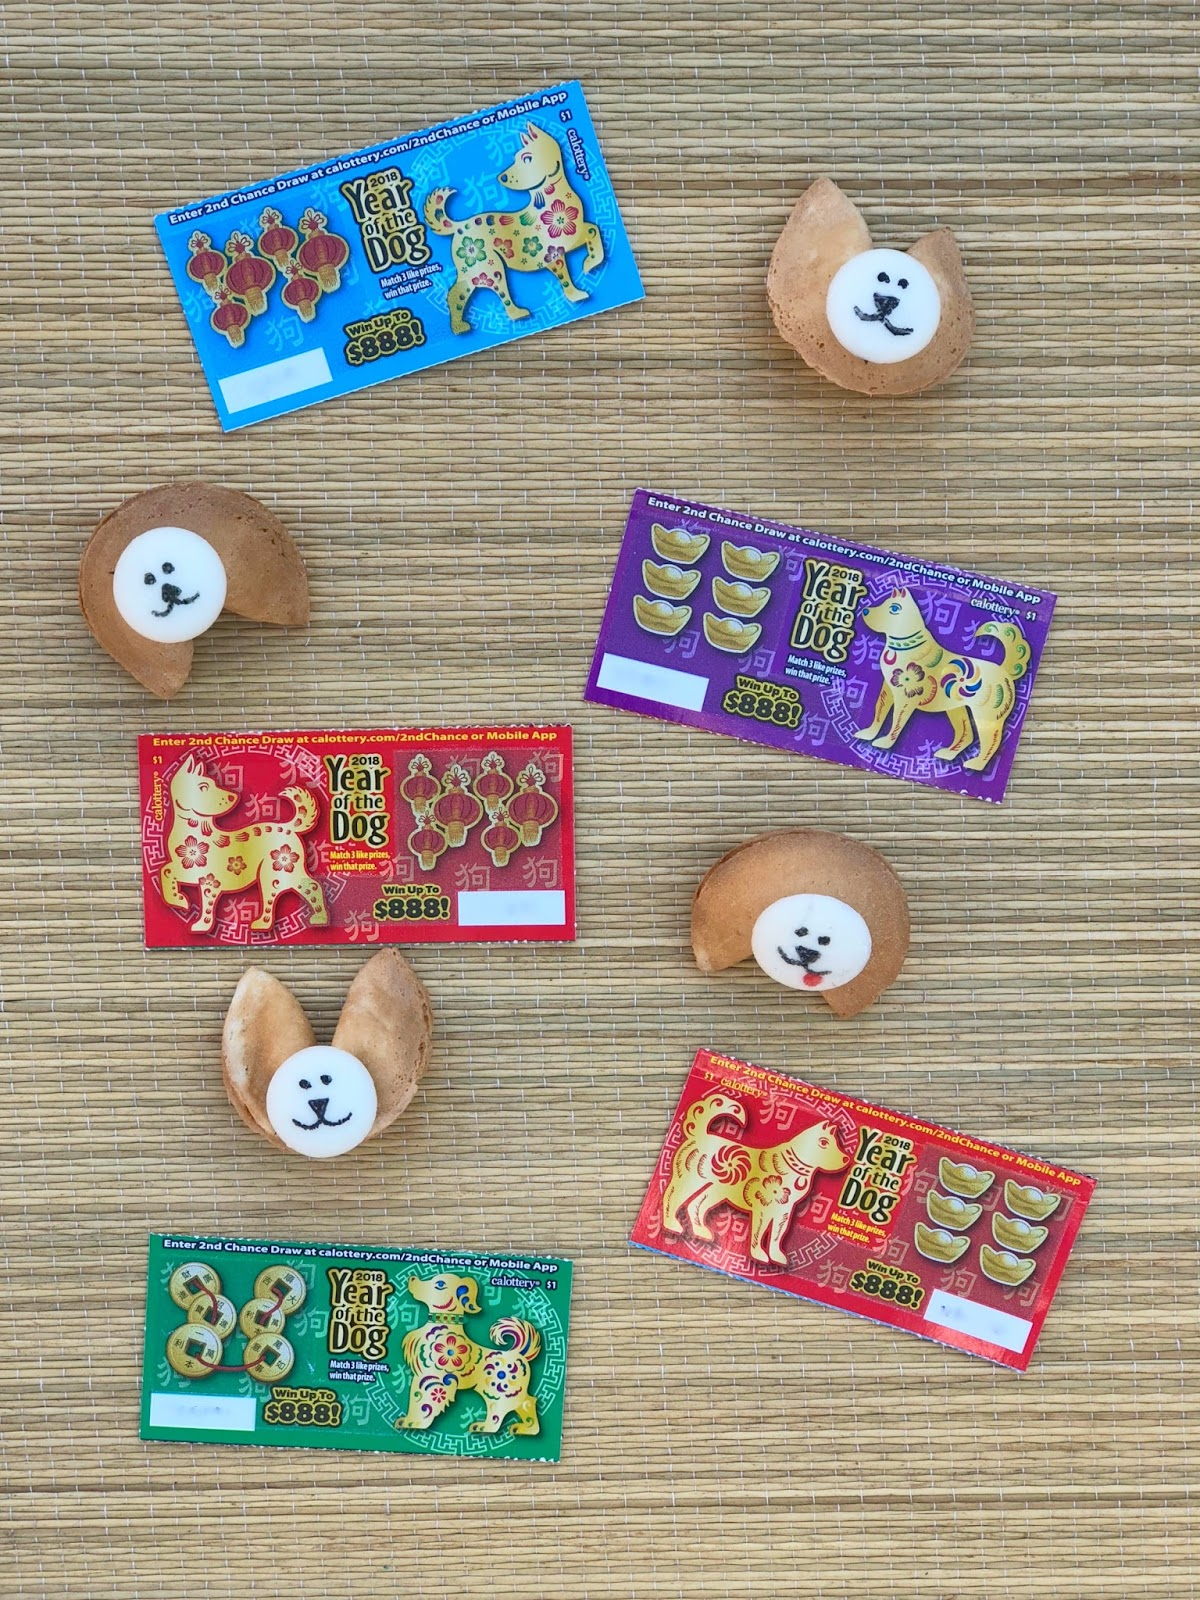 Jac o' lyn Murphy: Chinese New Year Lucky Dog Cookies